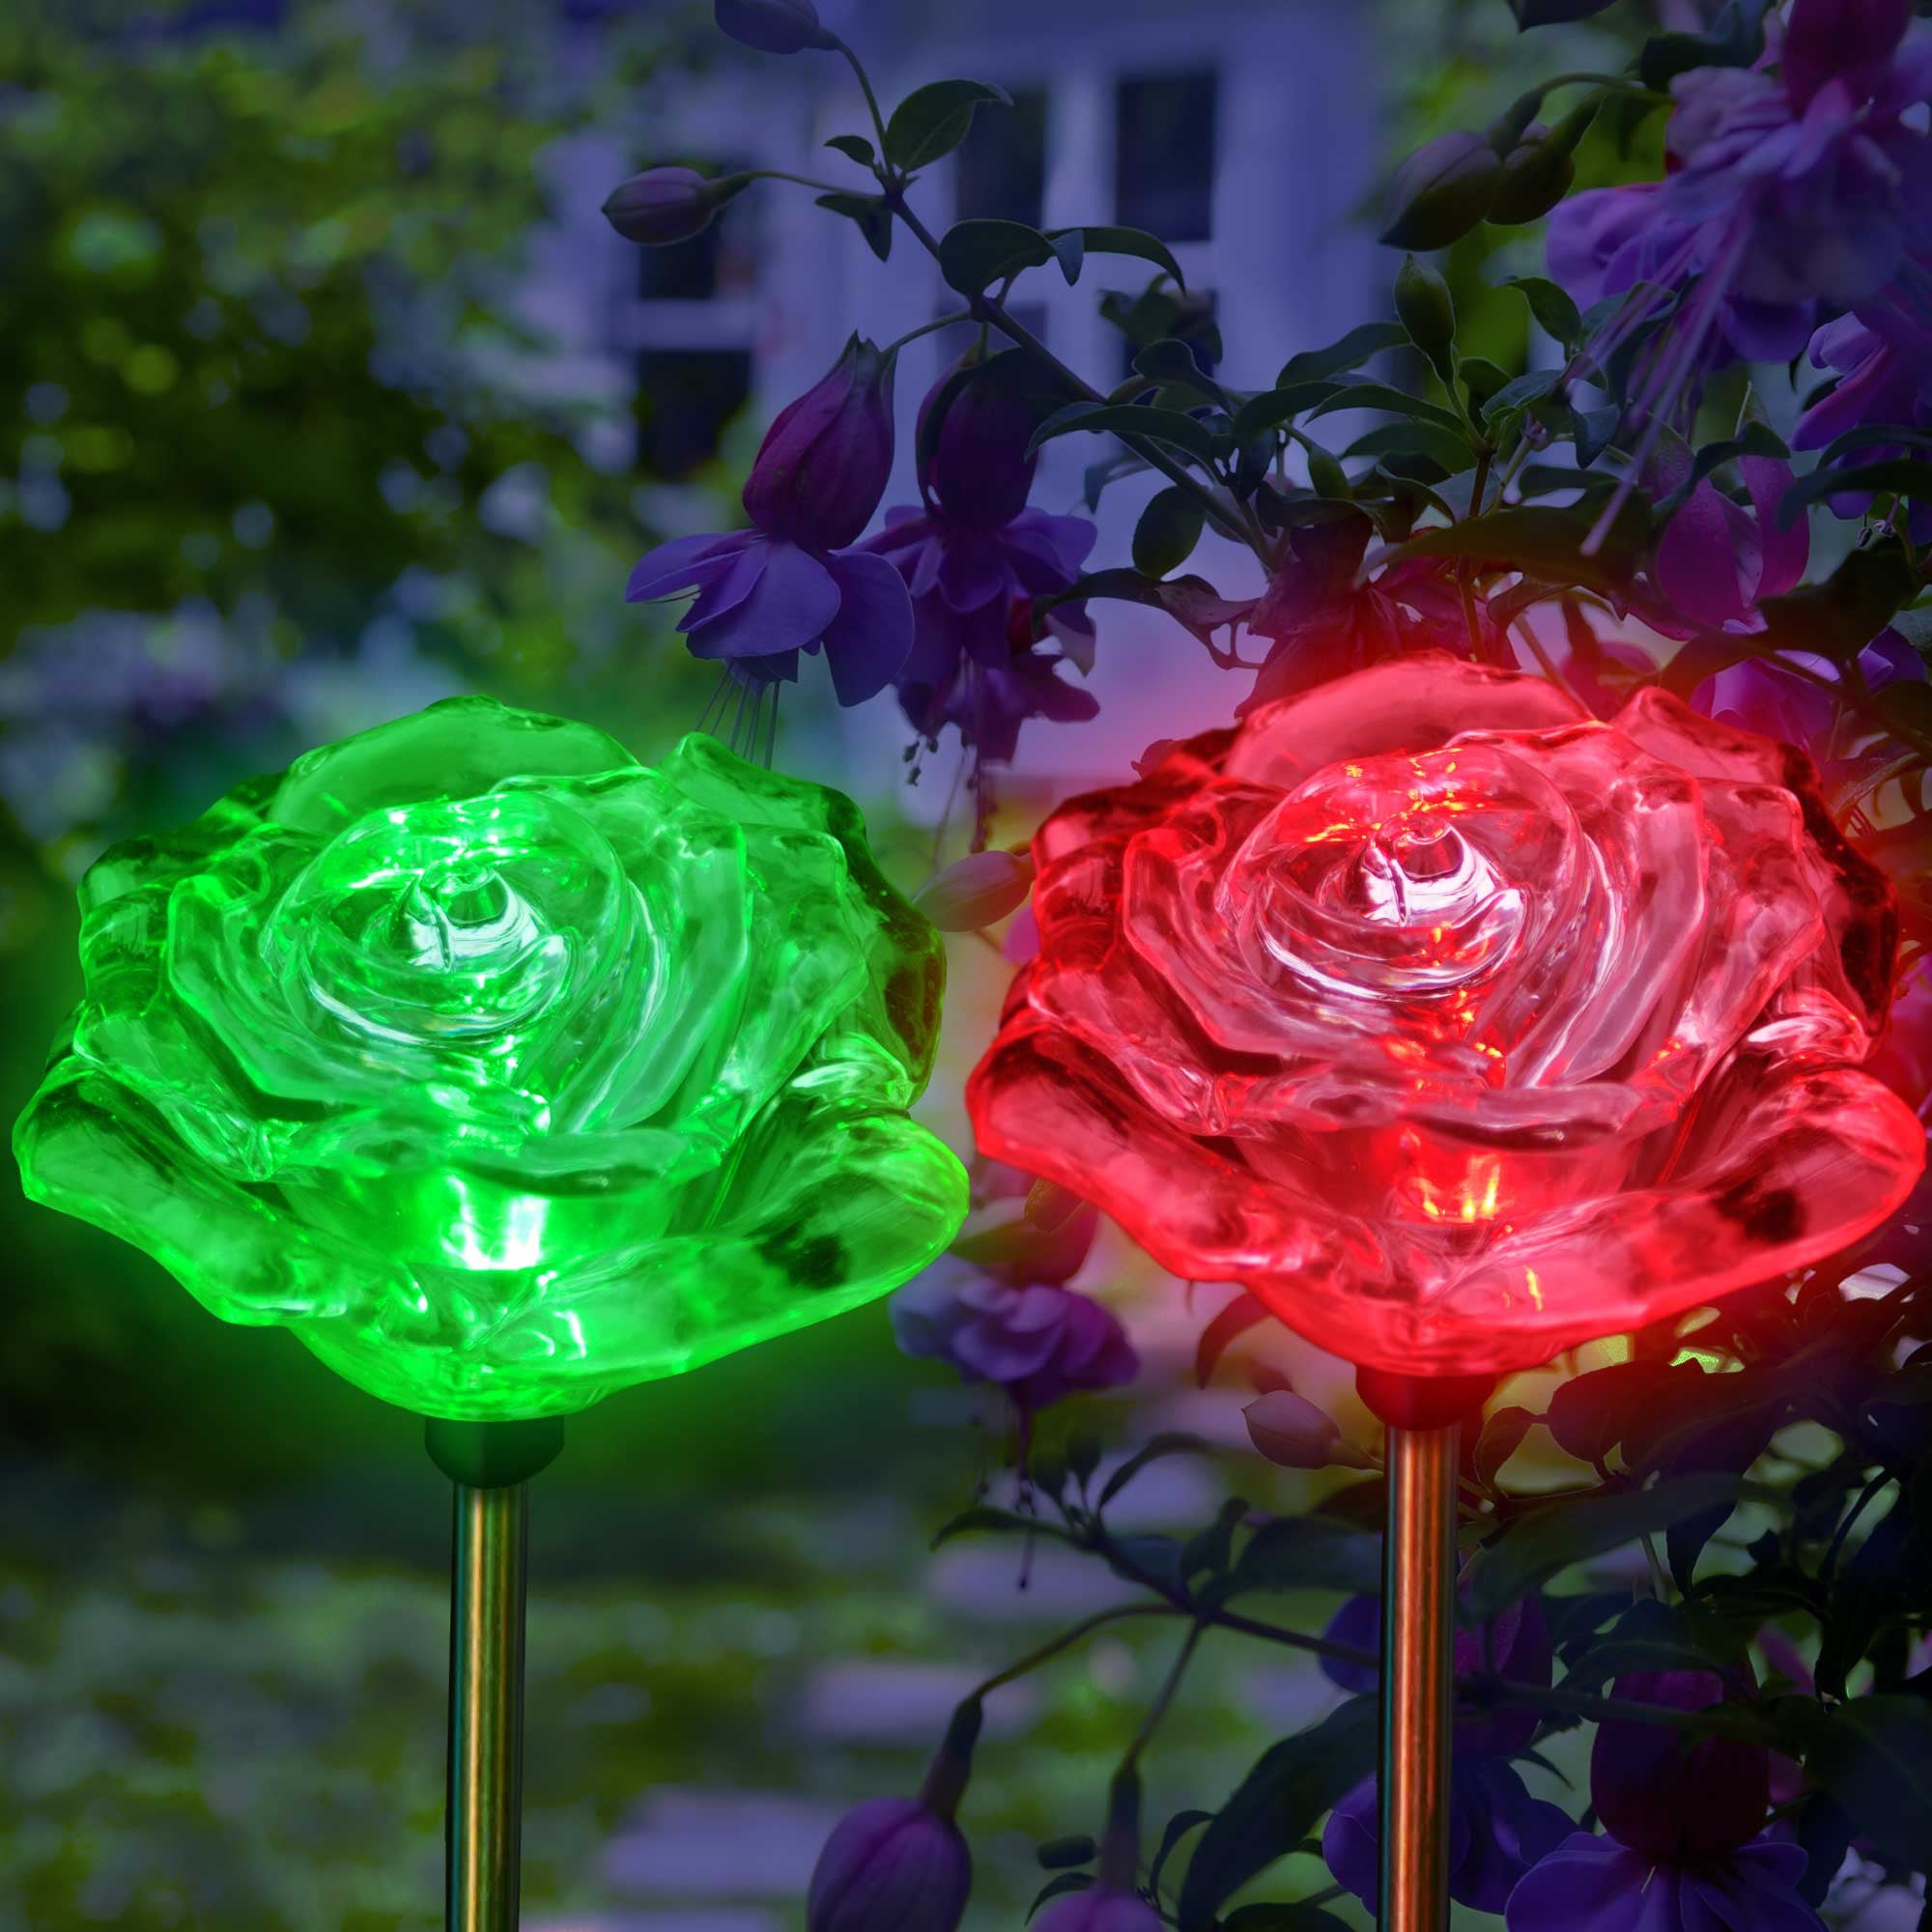 solar garden lights color changing lovely roses - my dream palace